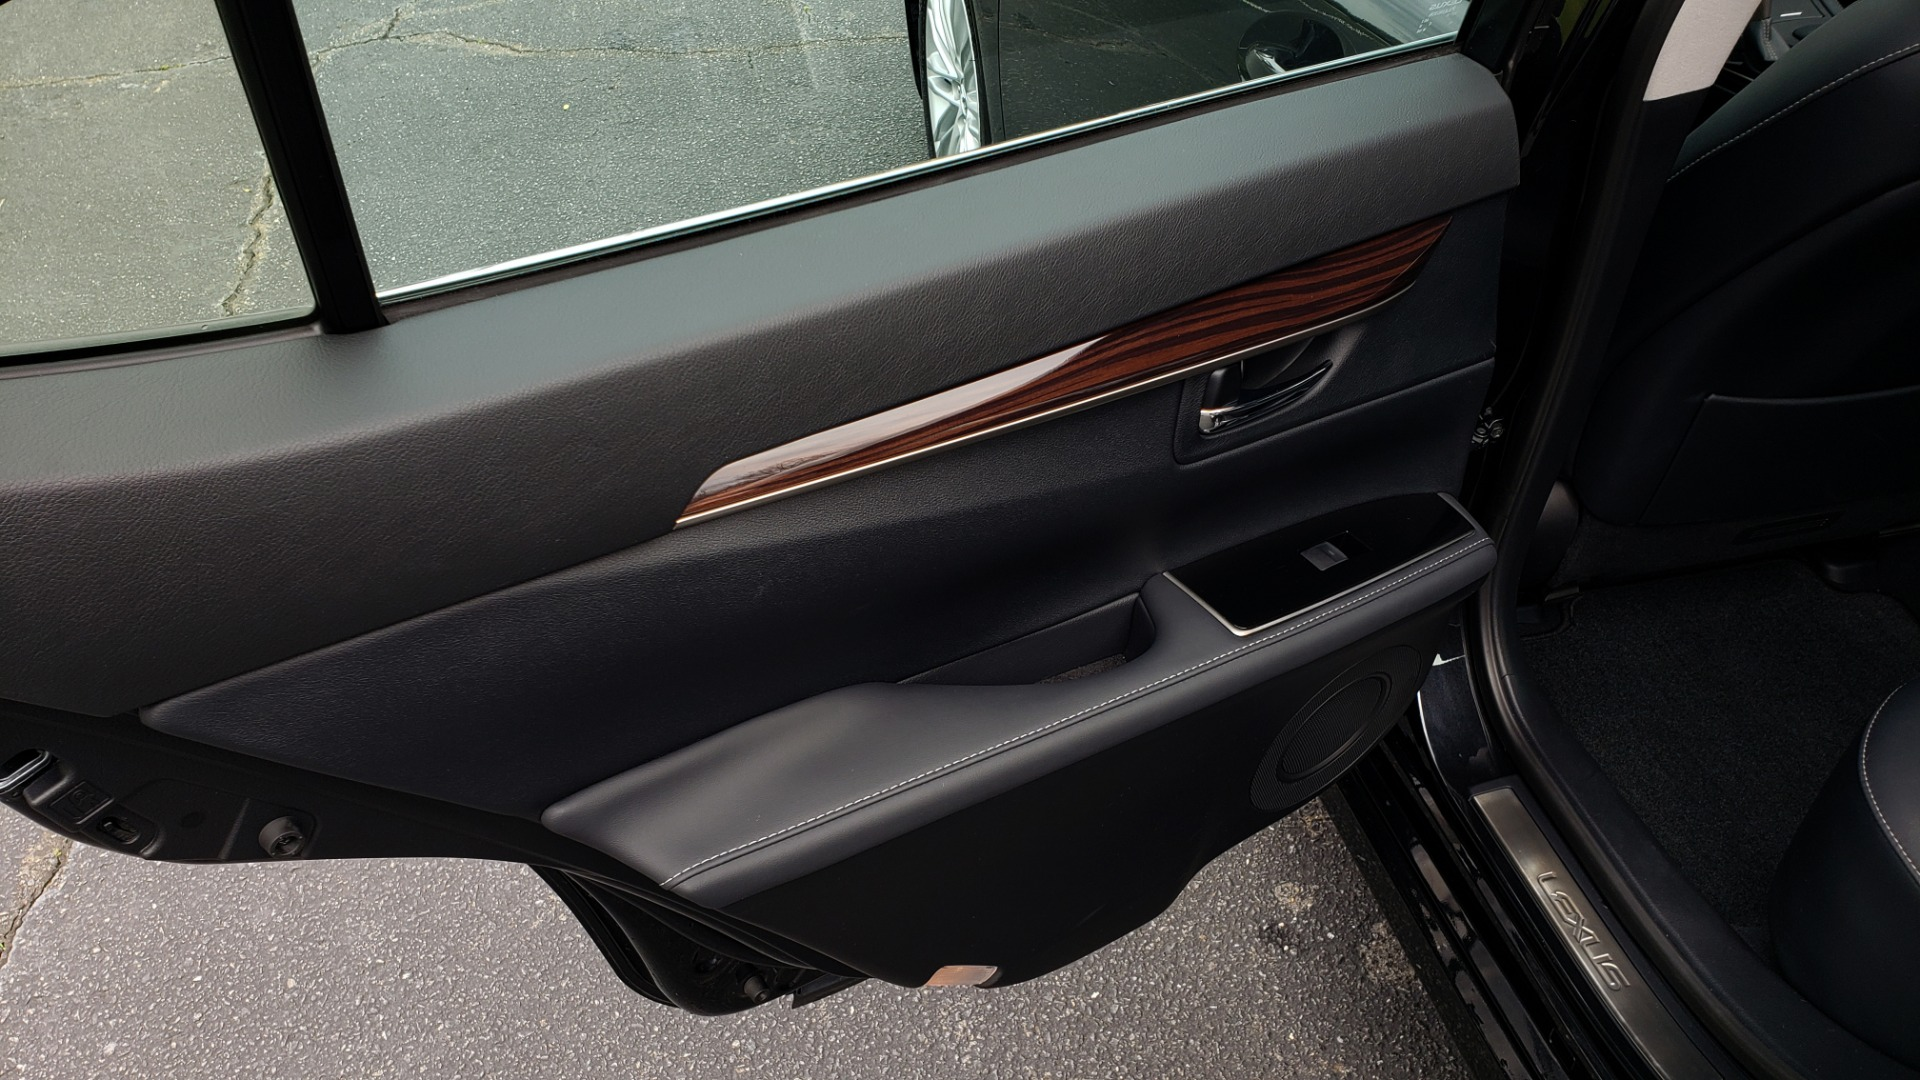 Used 2017 Lexus ES 350 PREMIUM / SUNROOF / PARK ASST / BSM / VENT SEATS / REARVIEW for sale Sold at Formula Imports in Charlotte NC 28227 56